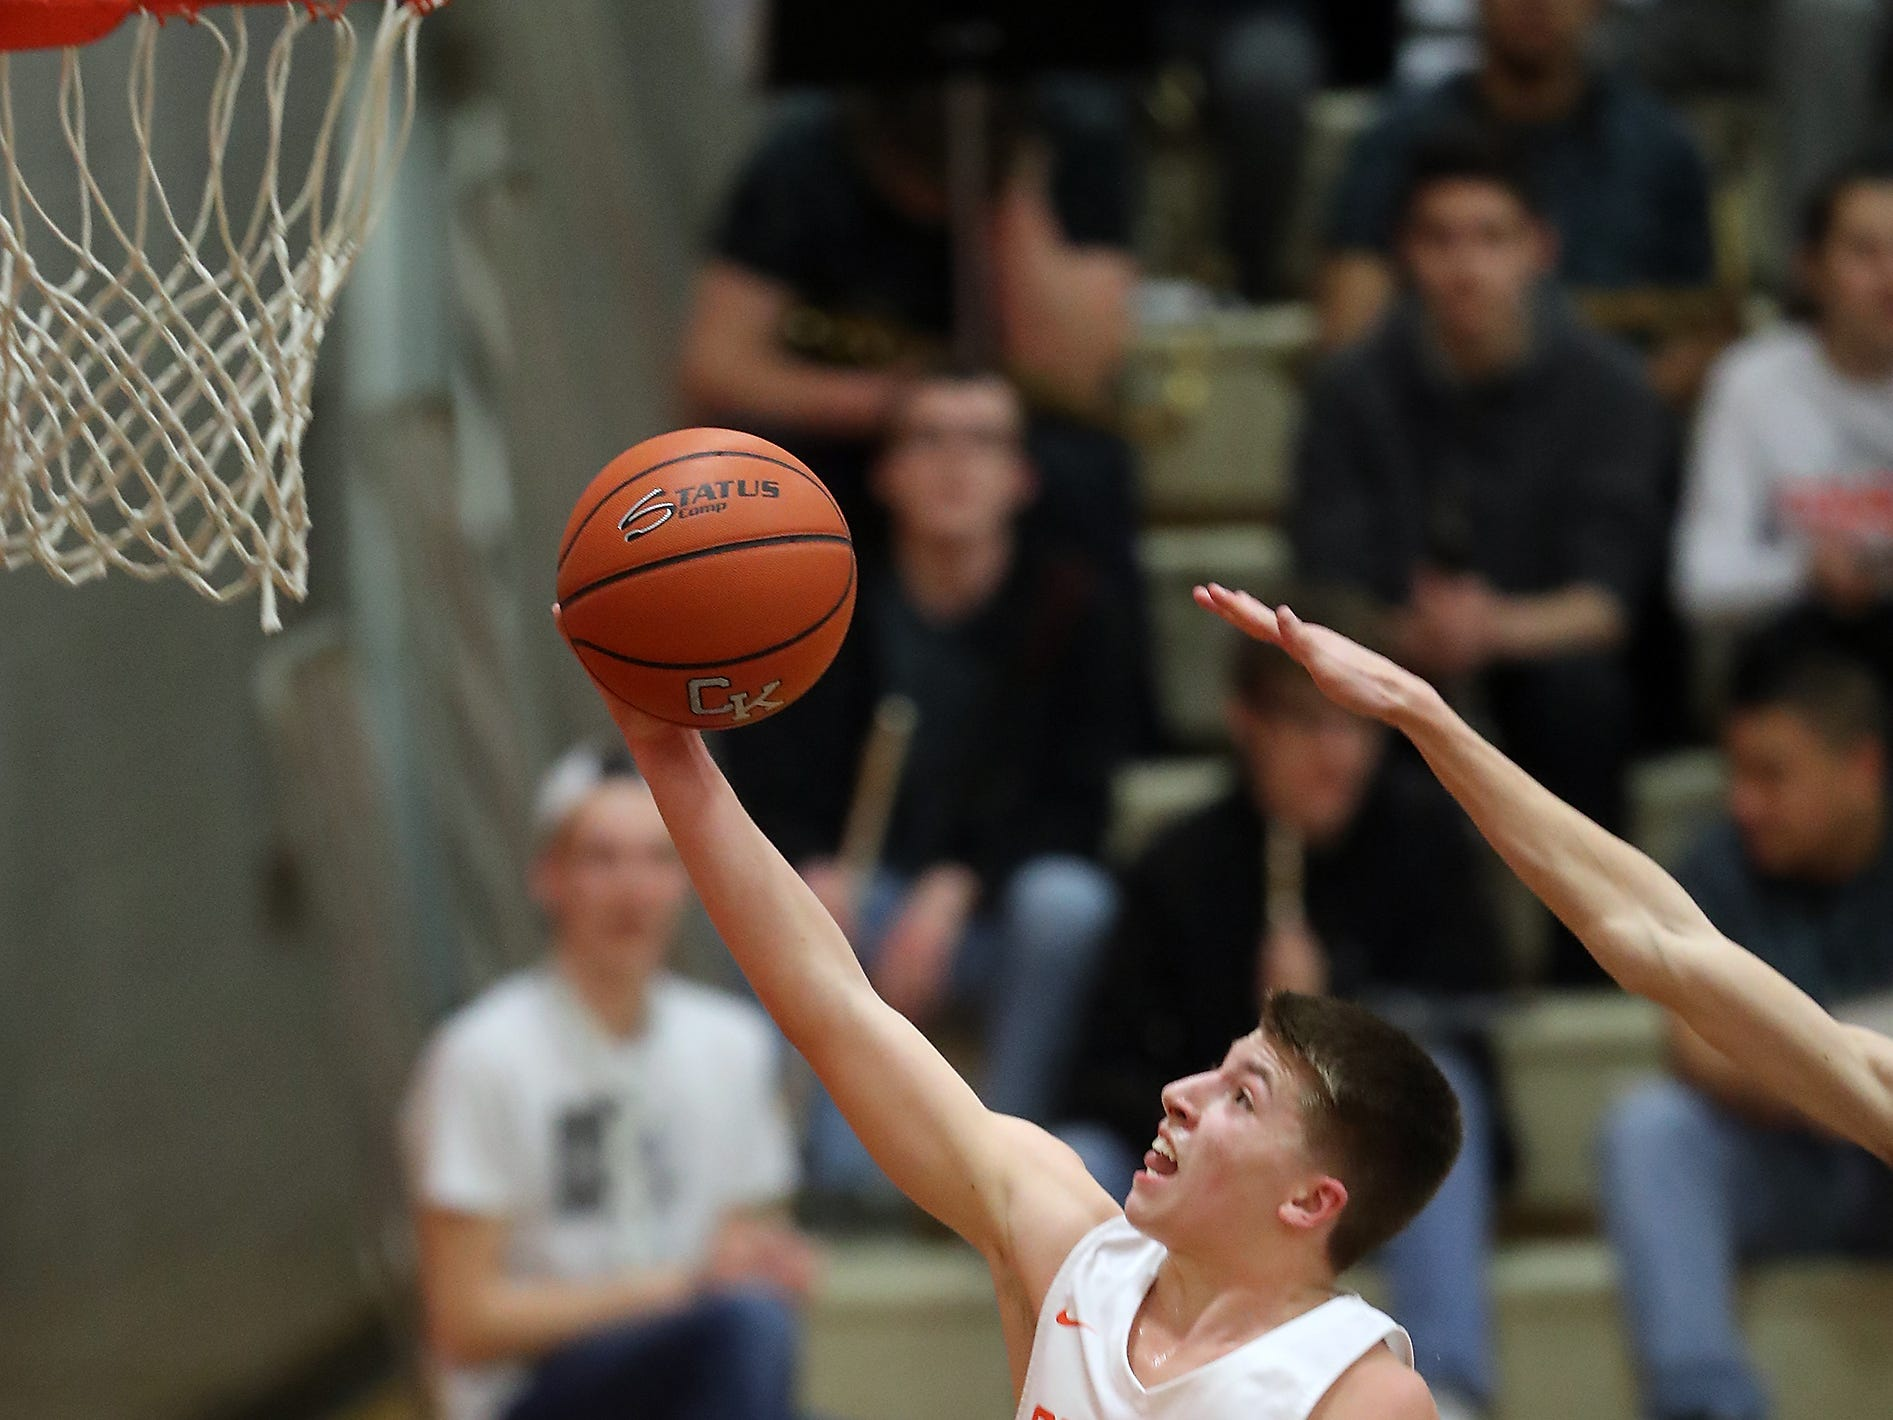 Central Kitsap vs Mountain View boys basketball in Silverdale on Wednesday, February 6, 2019.